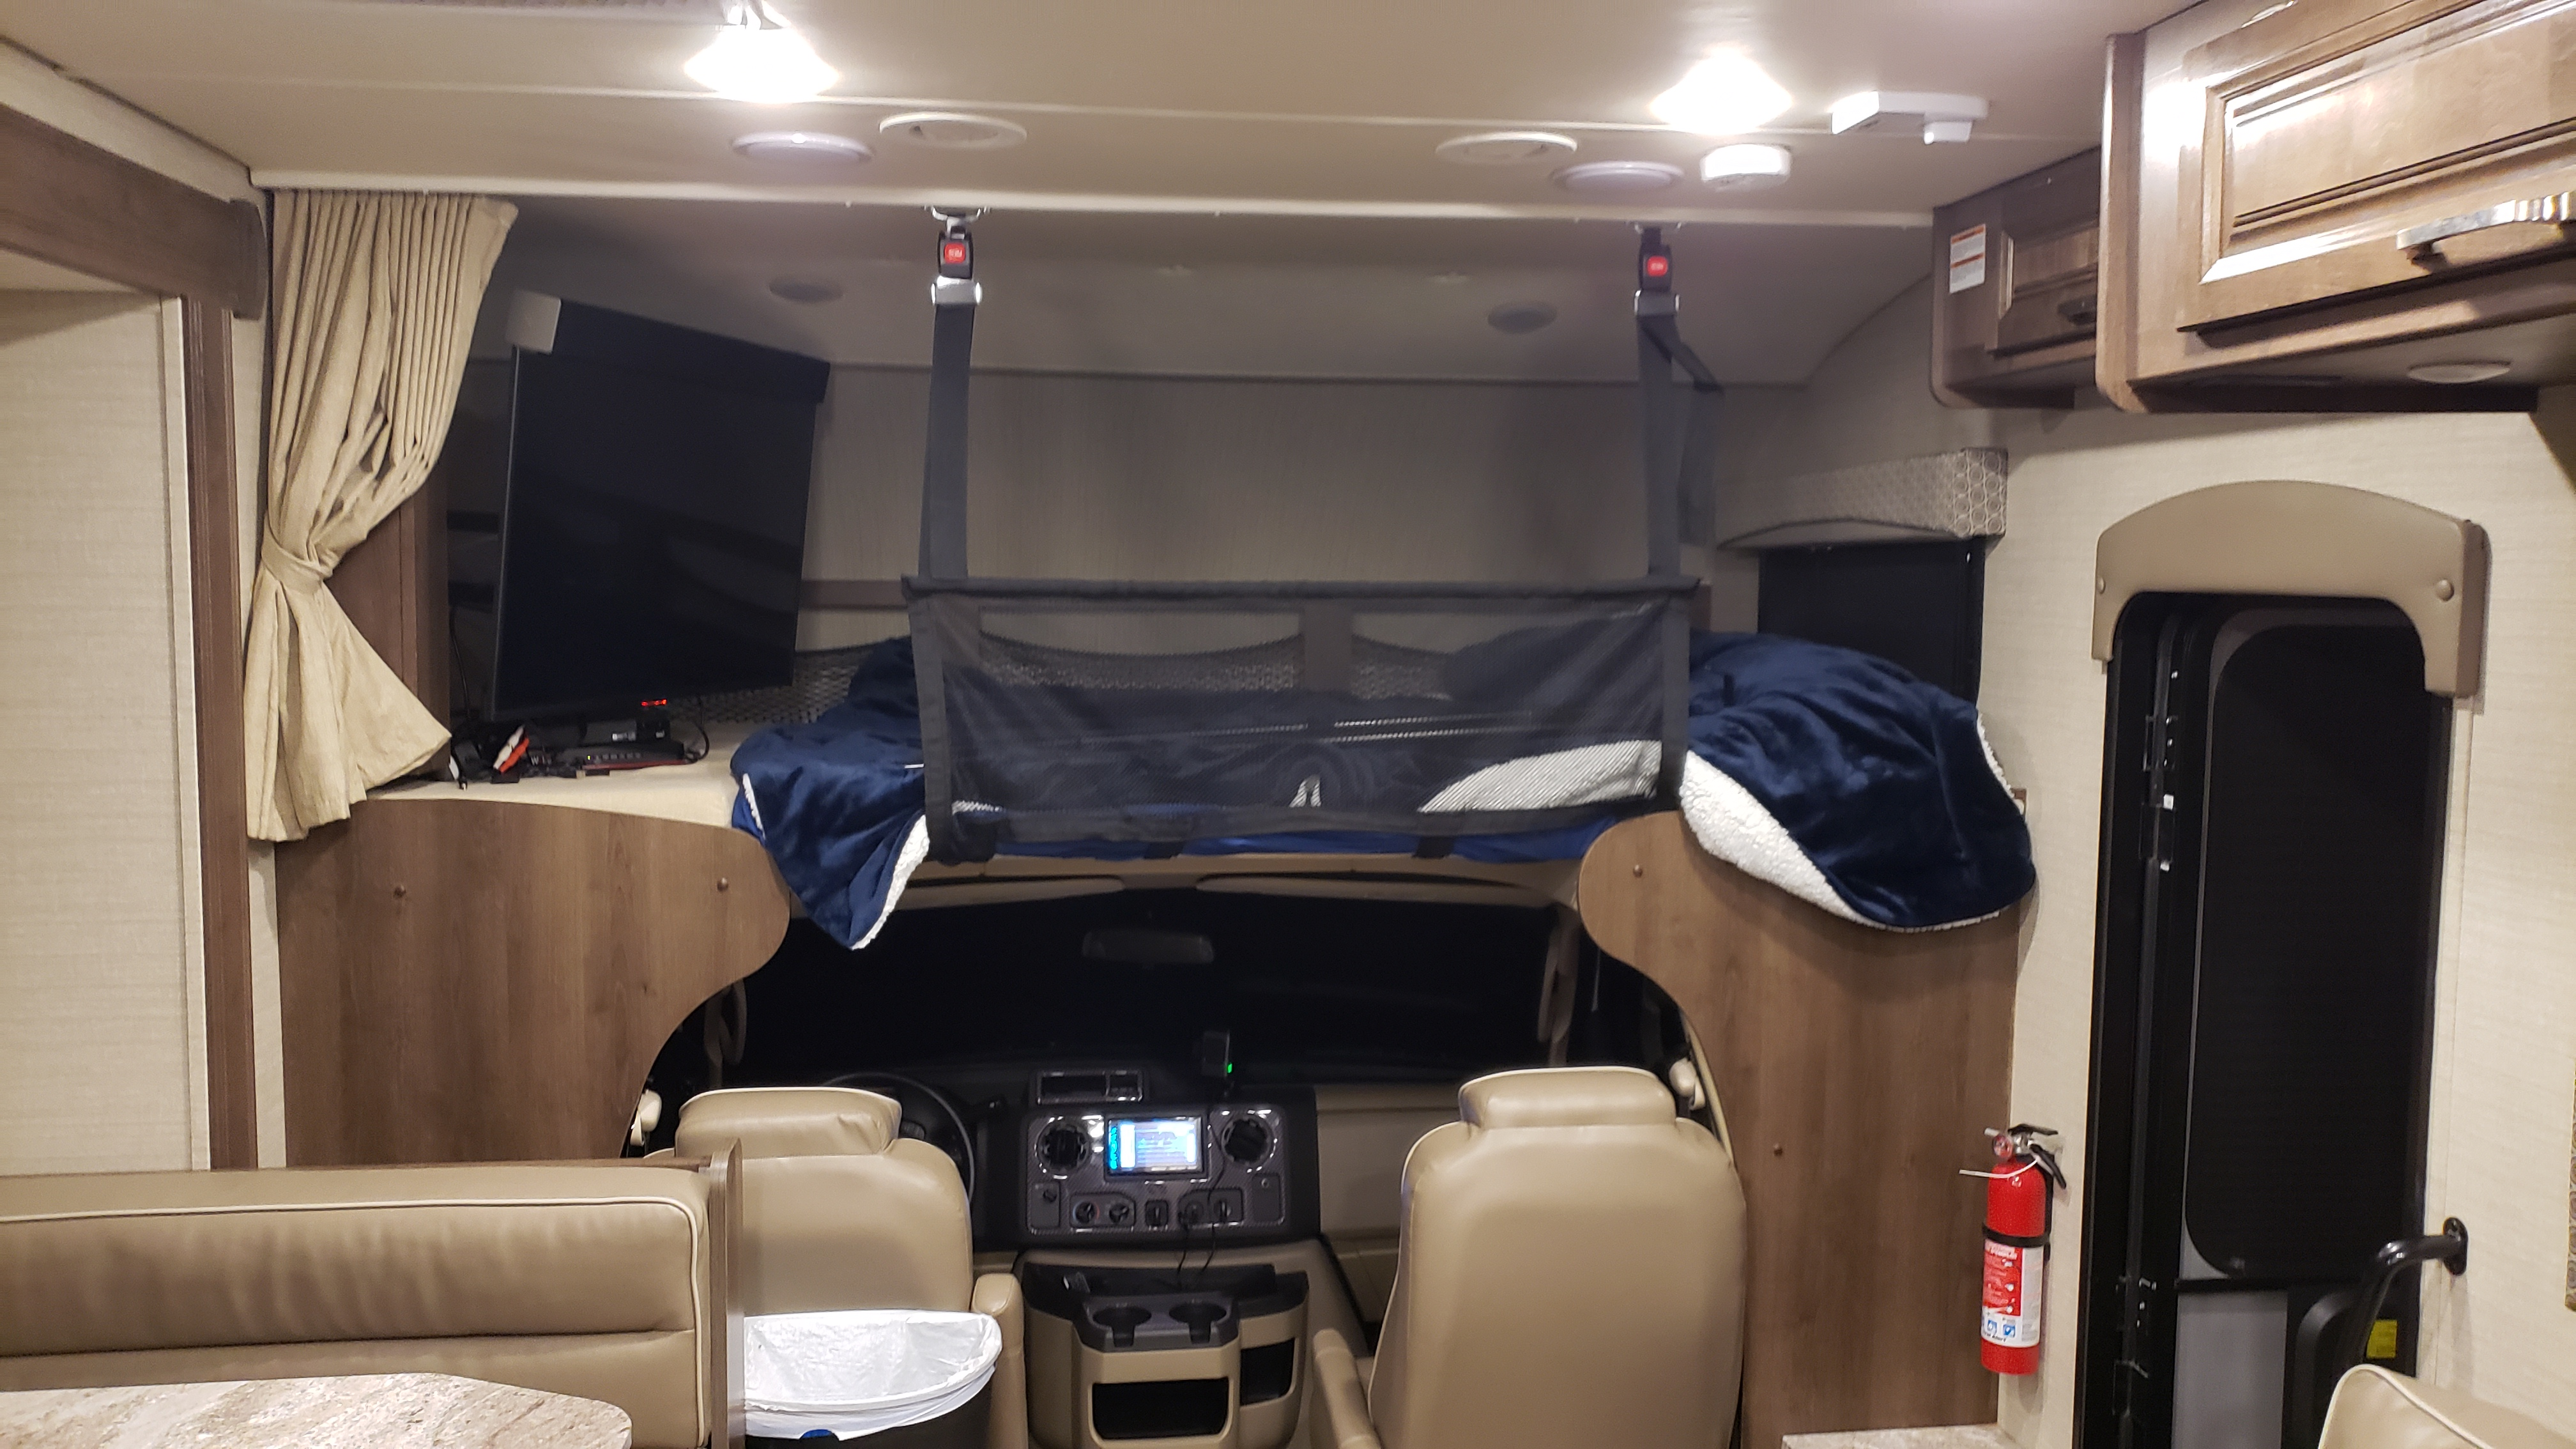 Cab over bunk with TV. Child Safety net is installed. Jayco Greyhawk 2019